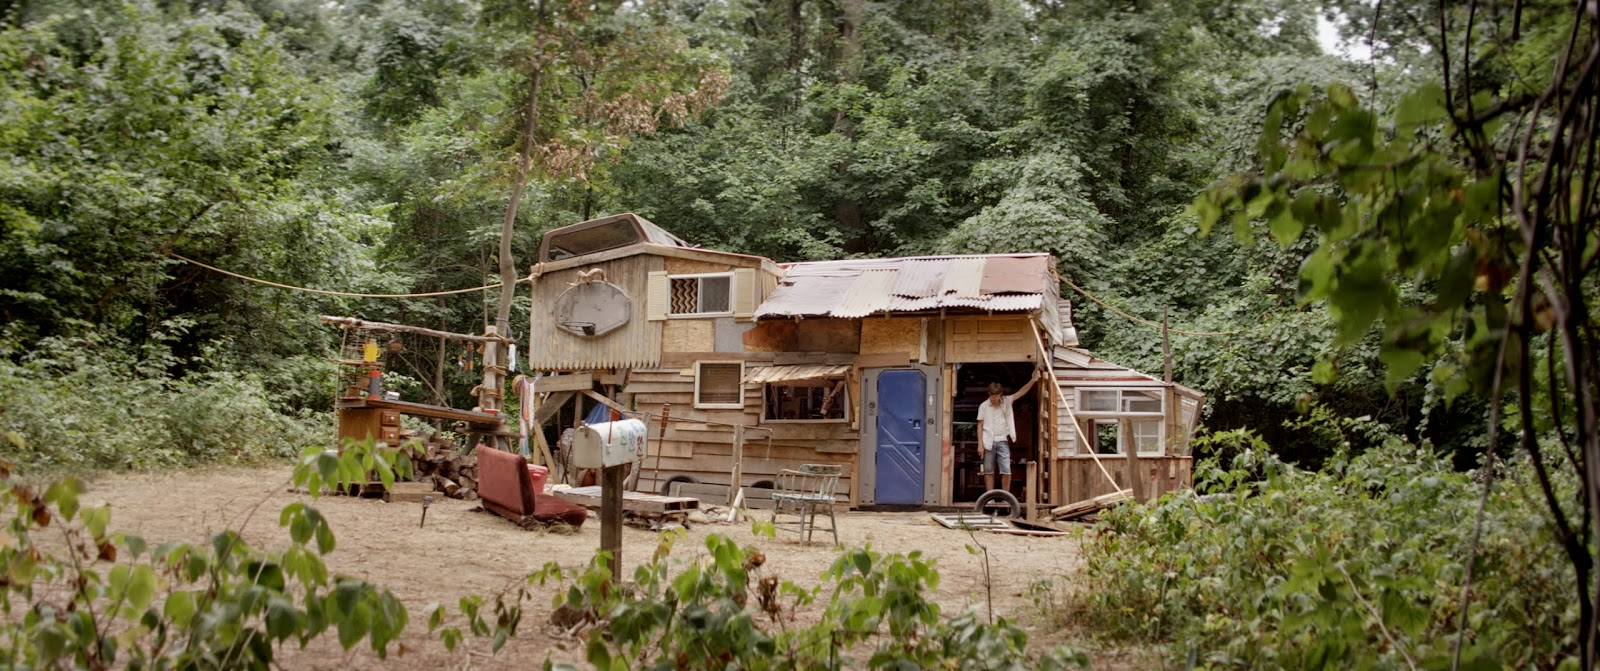 The kings of summer 2013 review tim 39 s film reviews for King s fish house